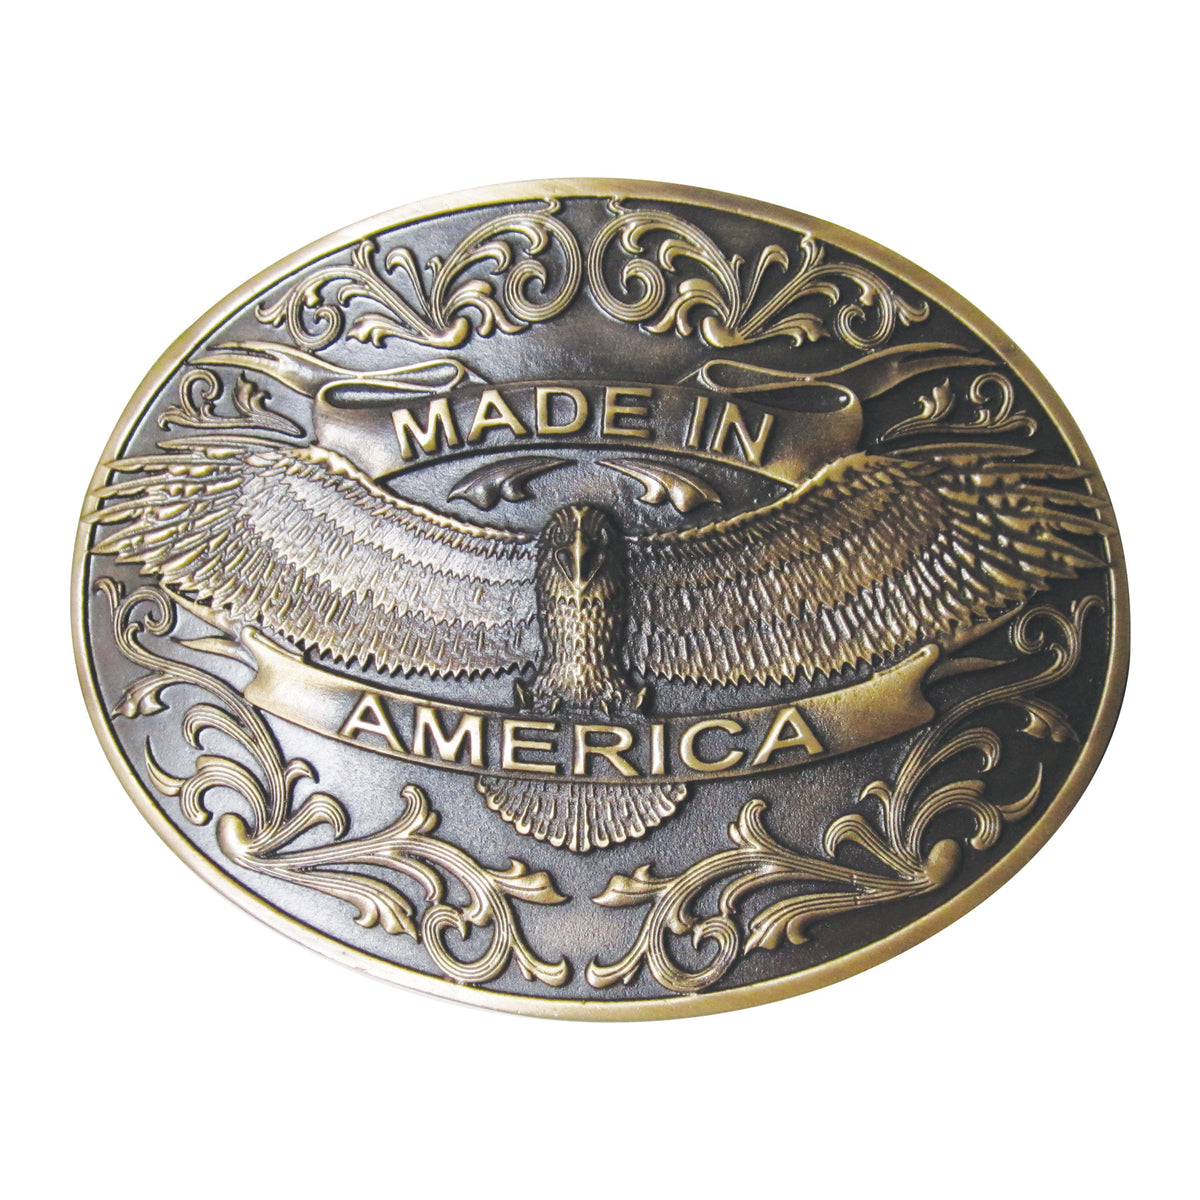 Made in America Buckle